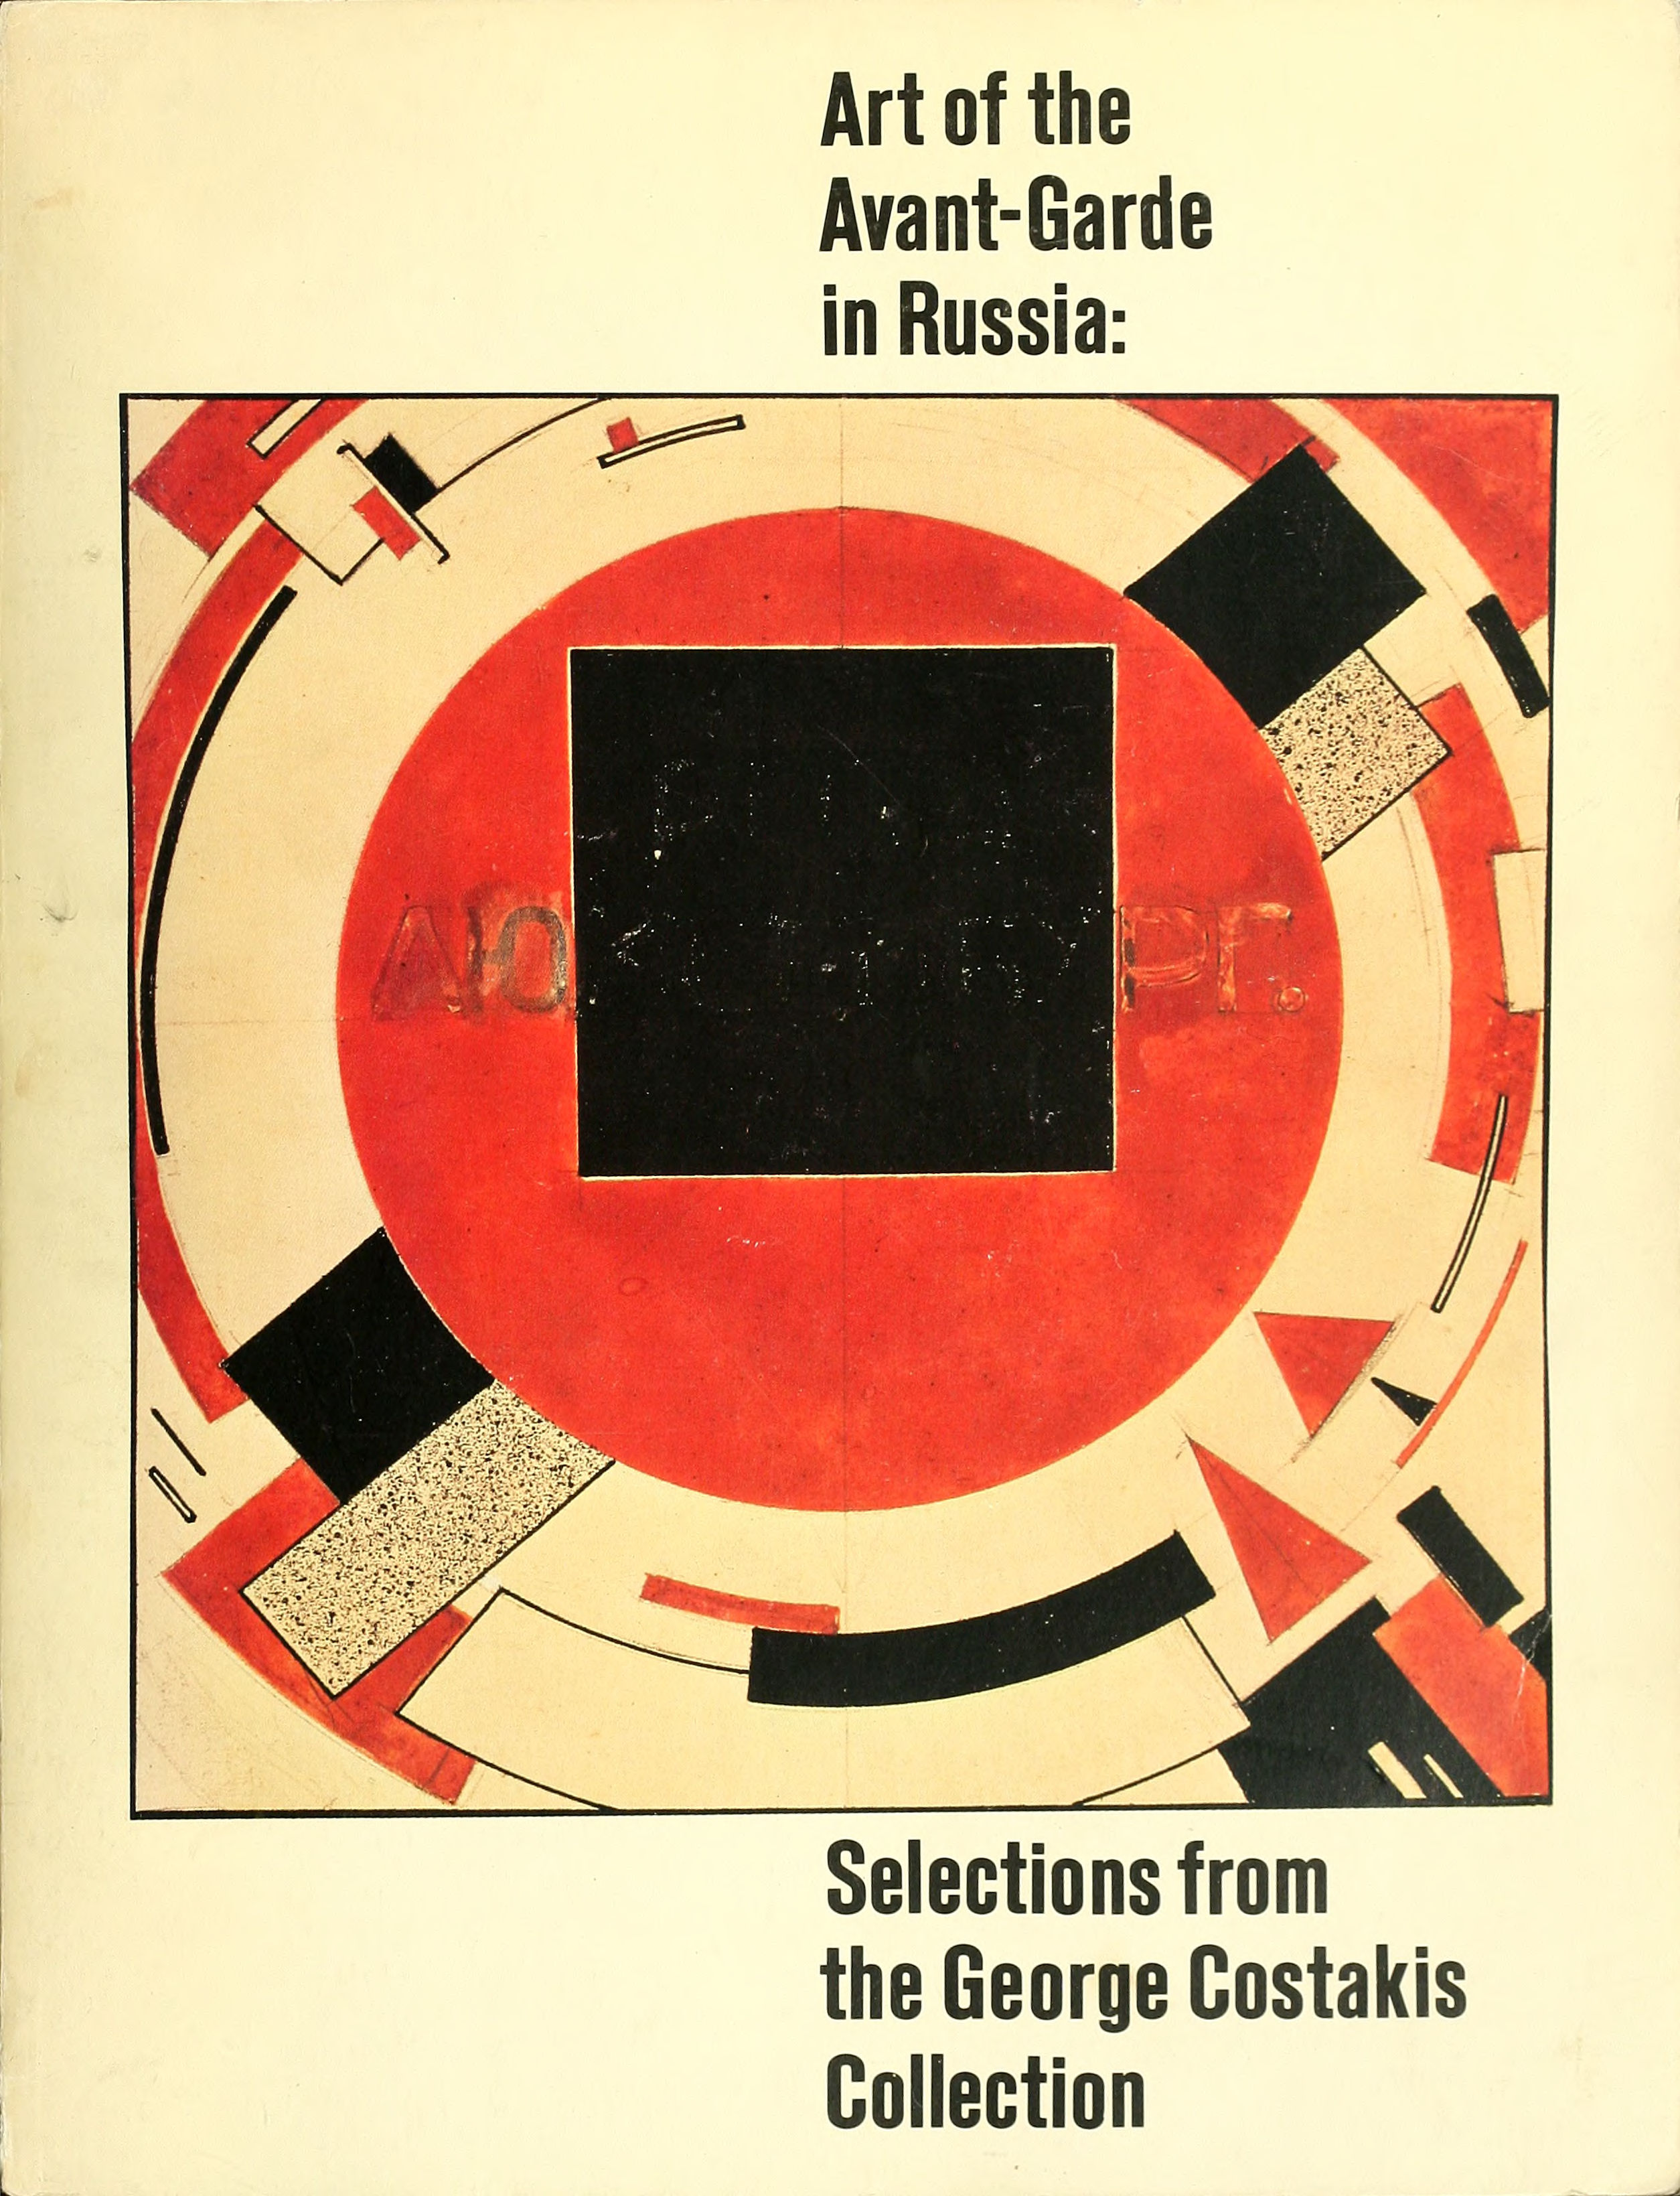 Art of the Avant-Garde in Russia : Selections from the George Costakis Collection / by Margit Rowell and Angelica Zander Rudenstine. — New York : The Solomon R. Guggenheim Museum, 1981